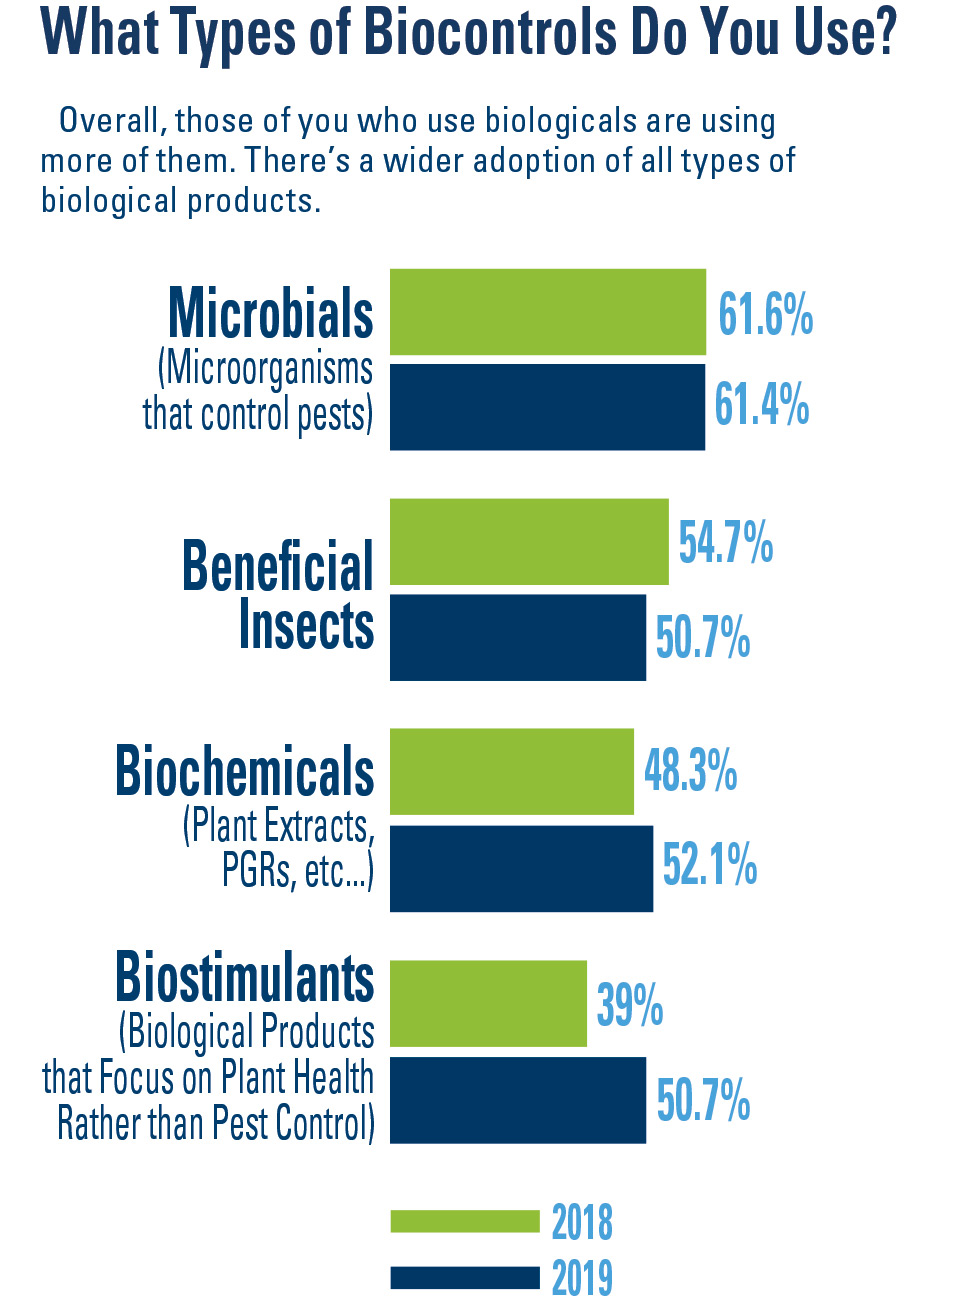 What-Type-of-Biocontrols-Do-You-Use AVG SOI 2019